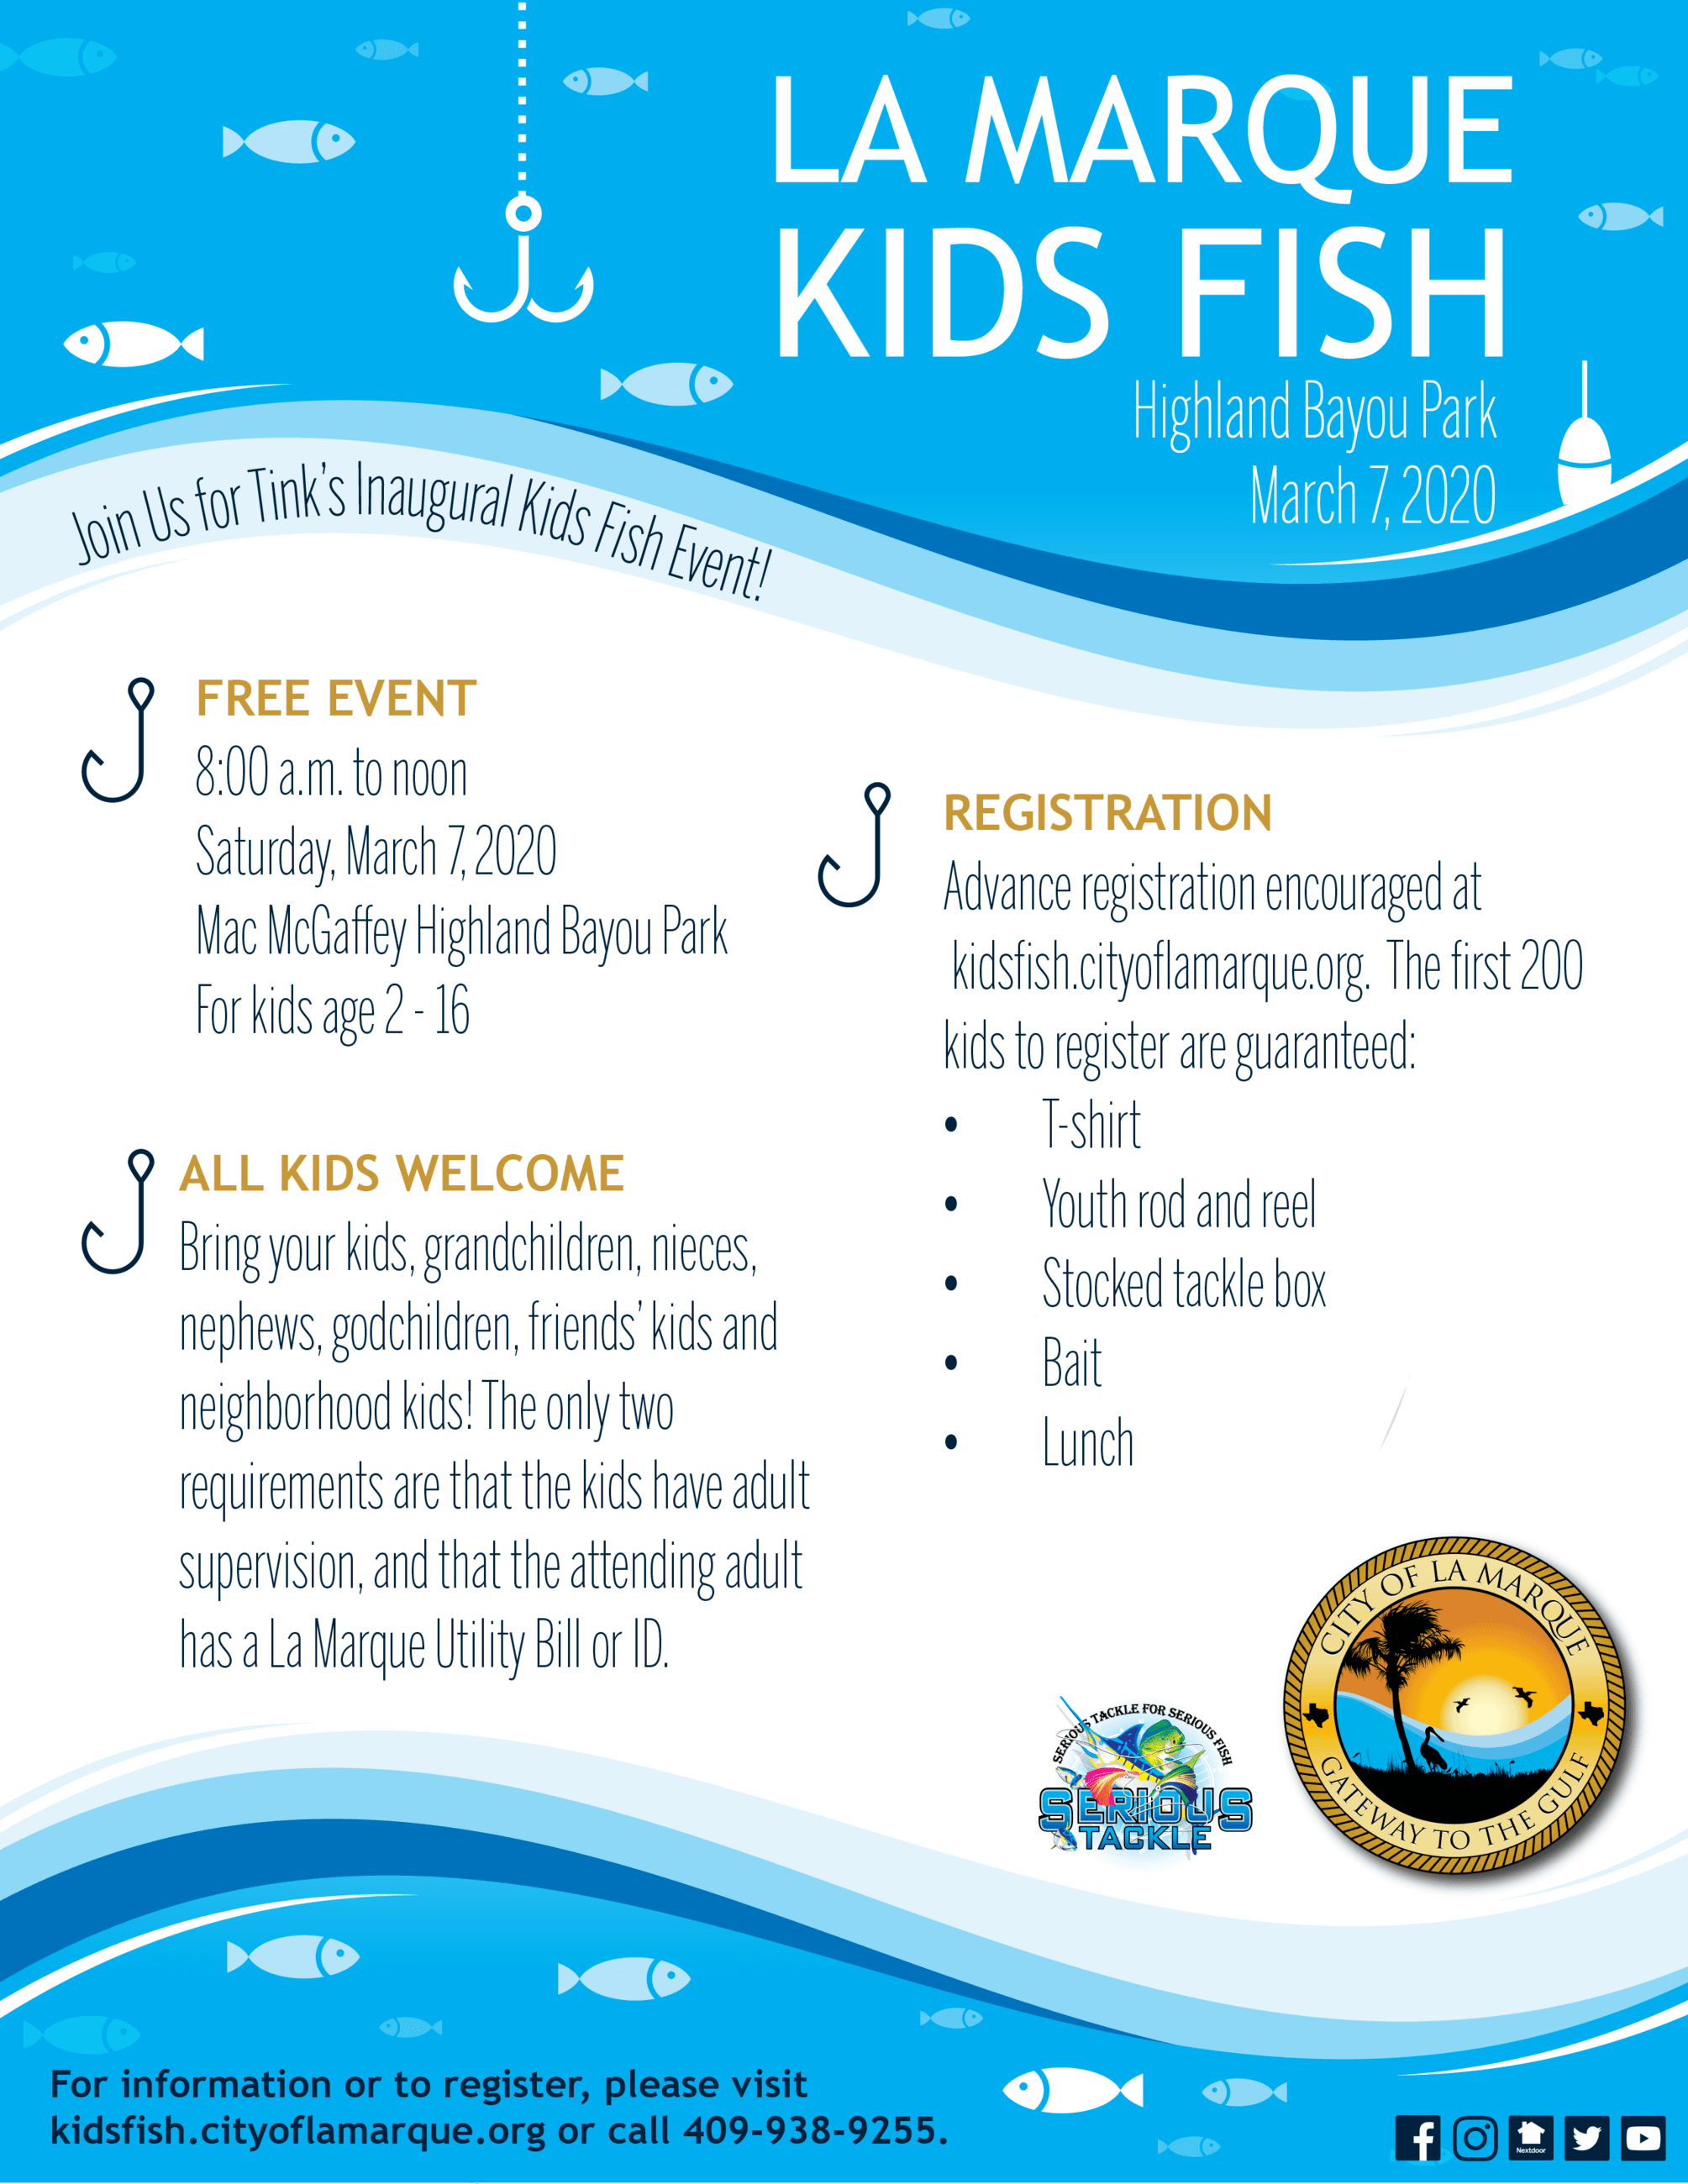 La Marque Kids Fish flyer with event details